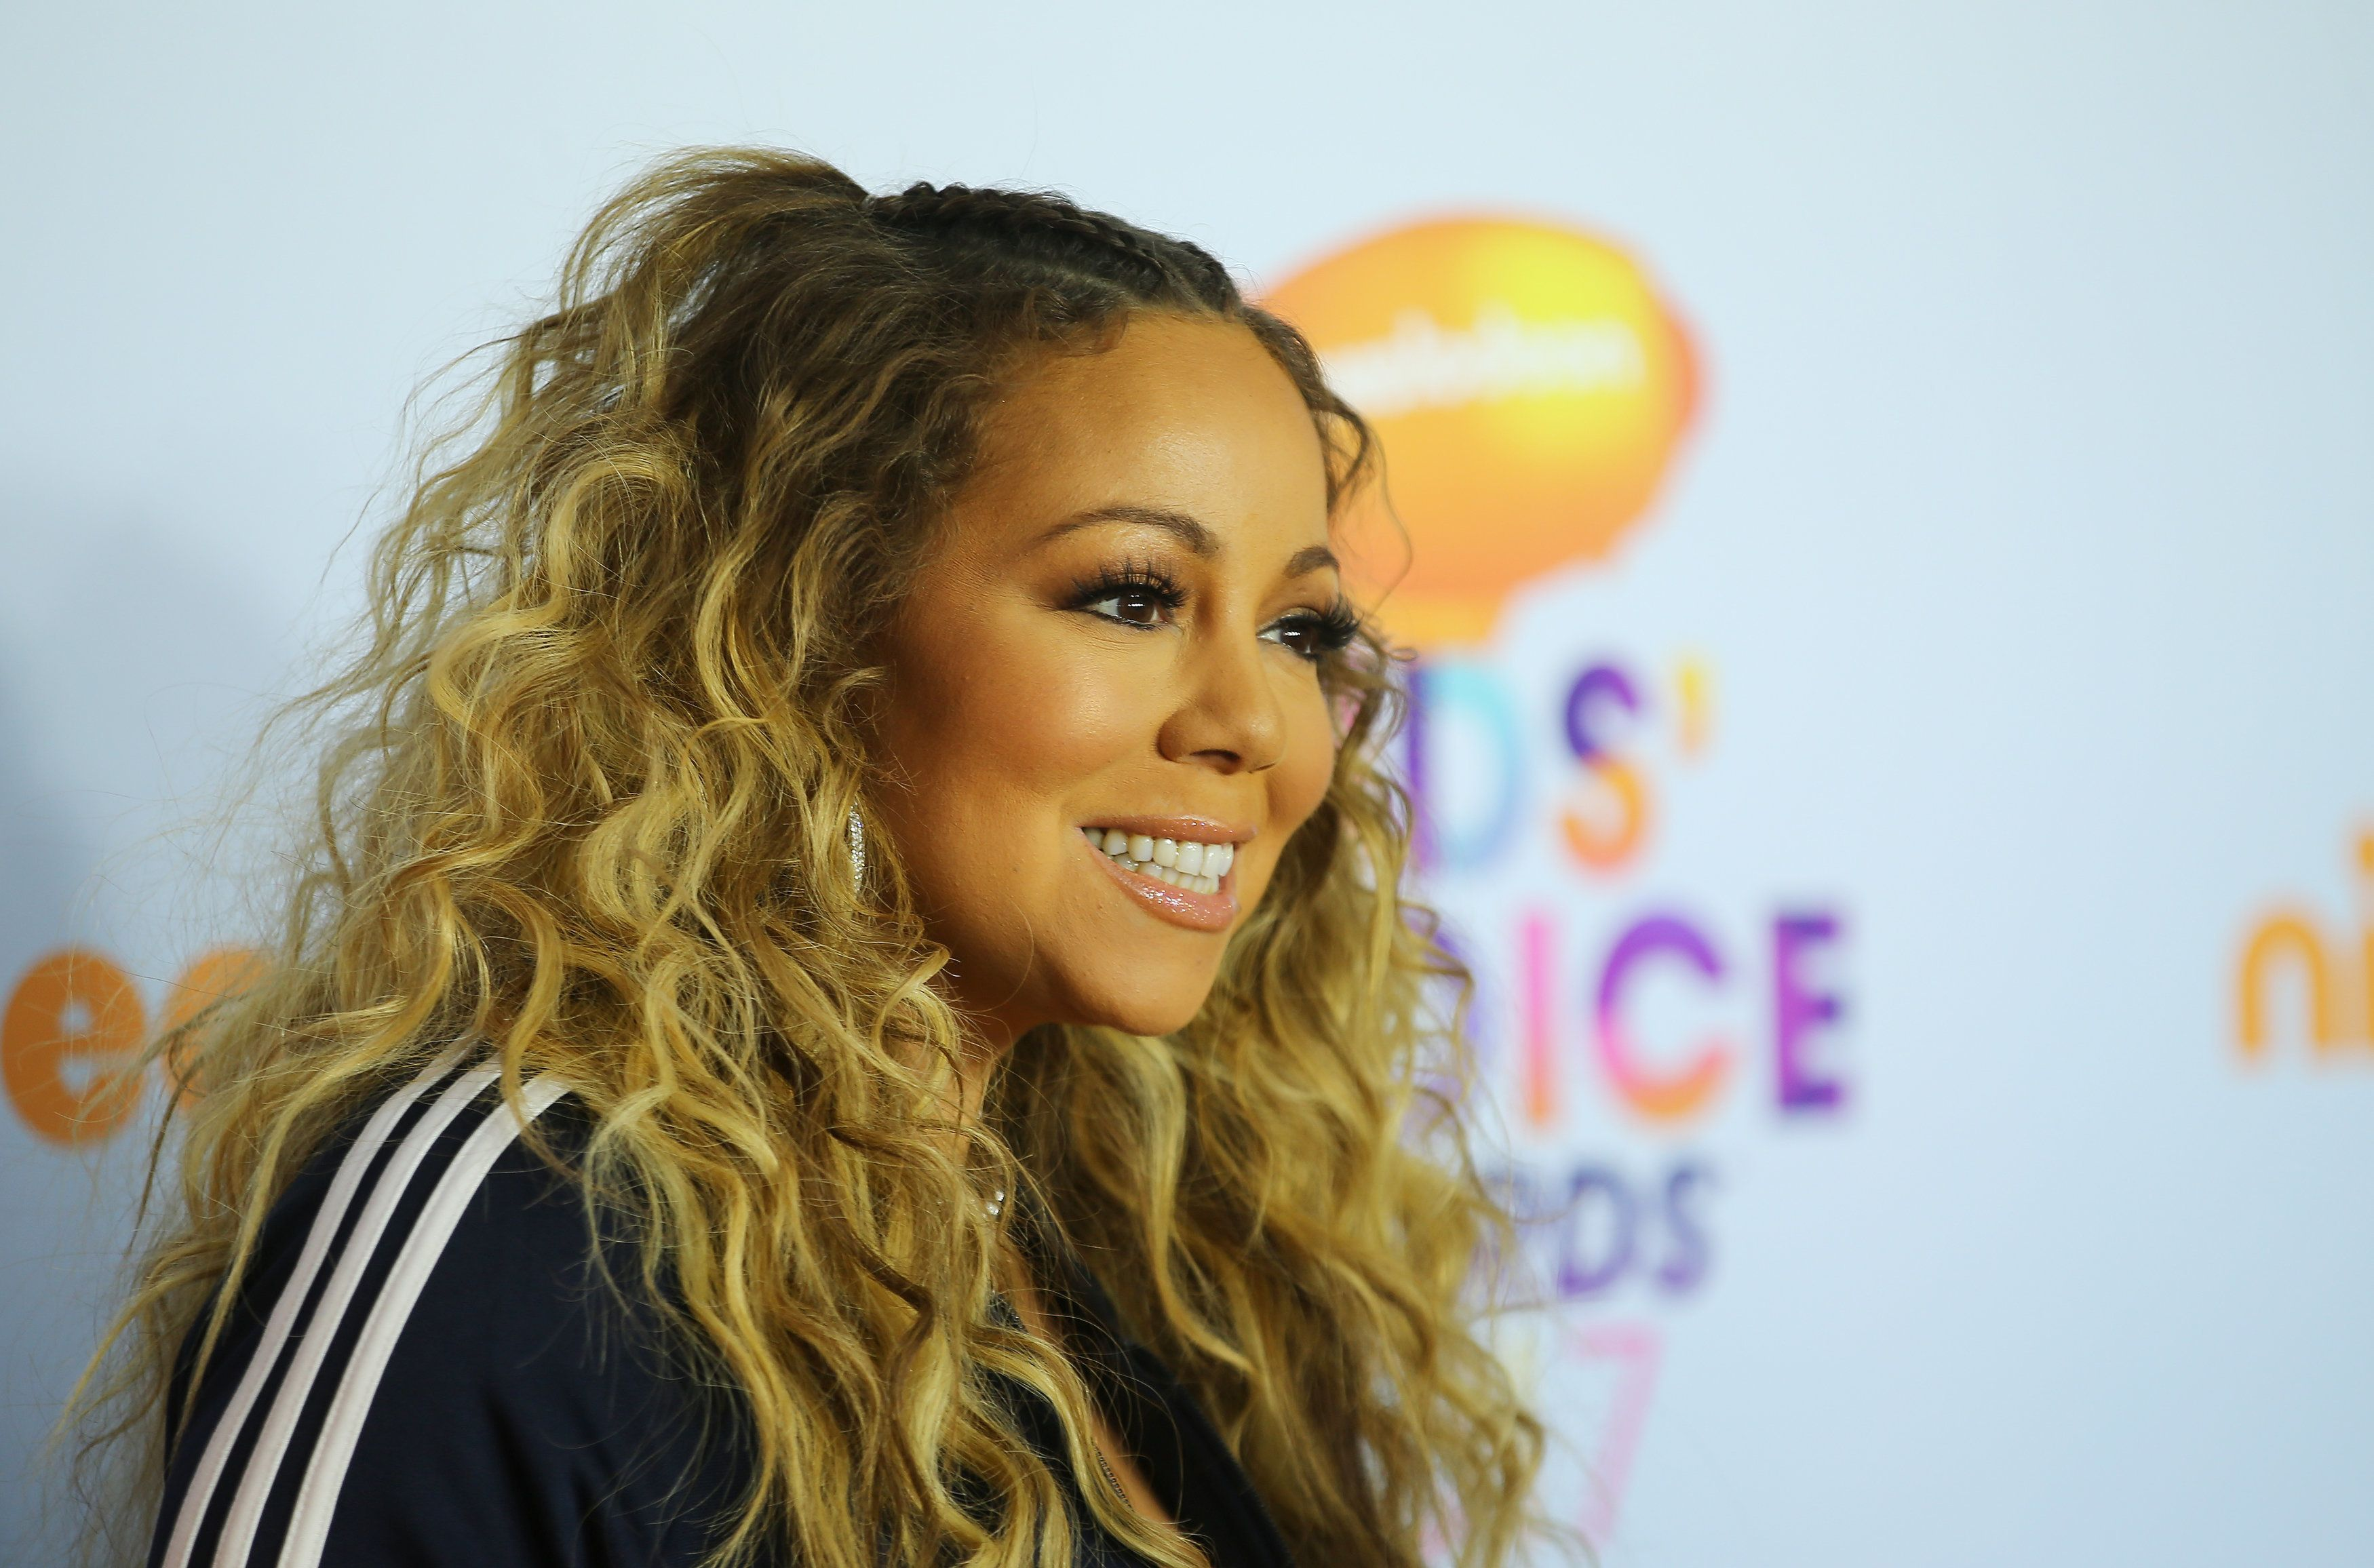 Mariah Carey Ex-Manager Claims Breach Of Contract, Details Emerge